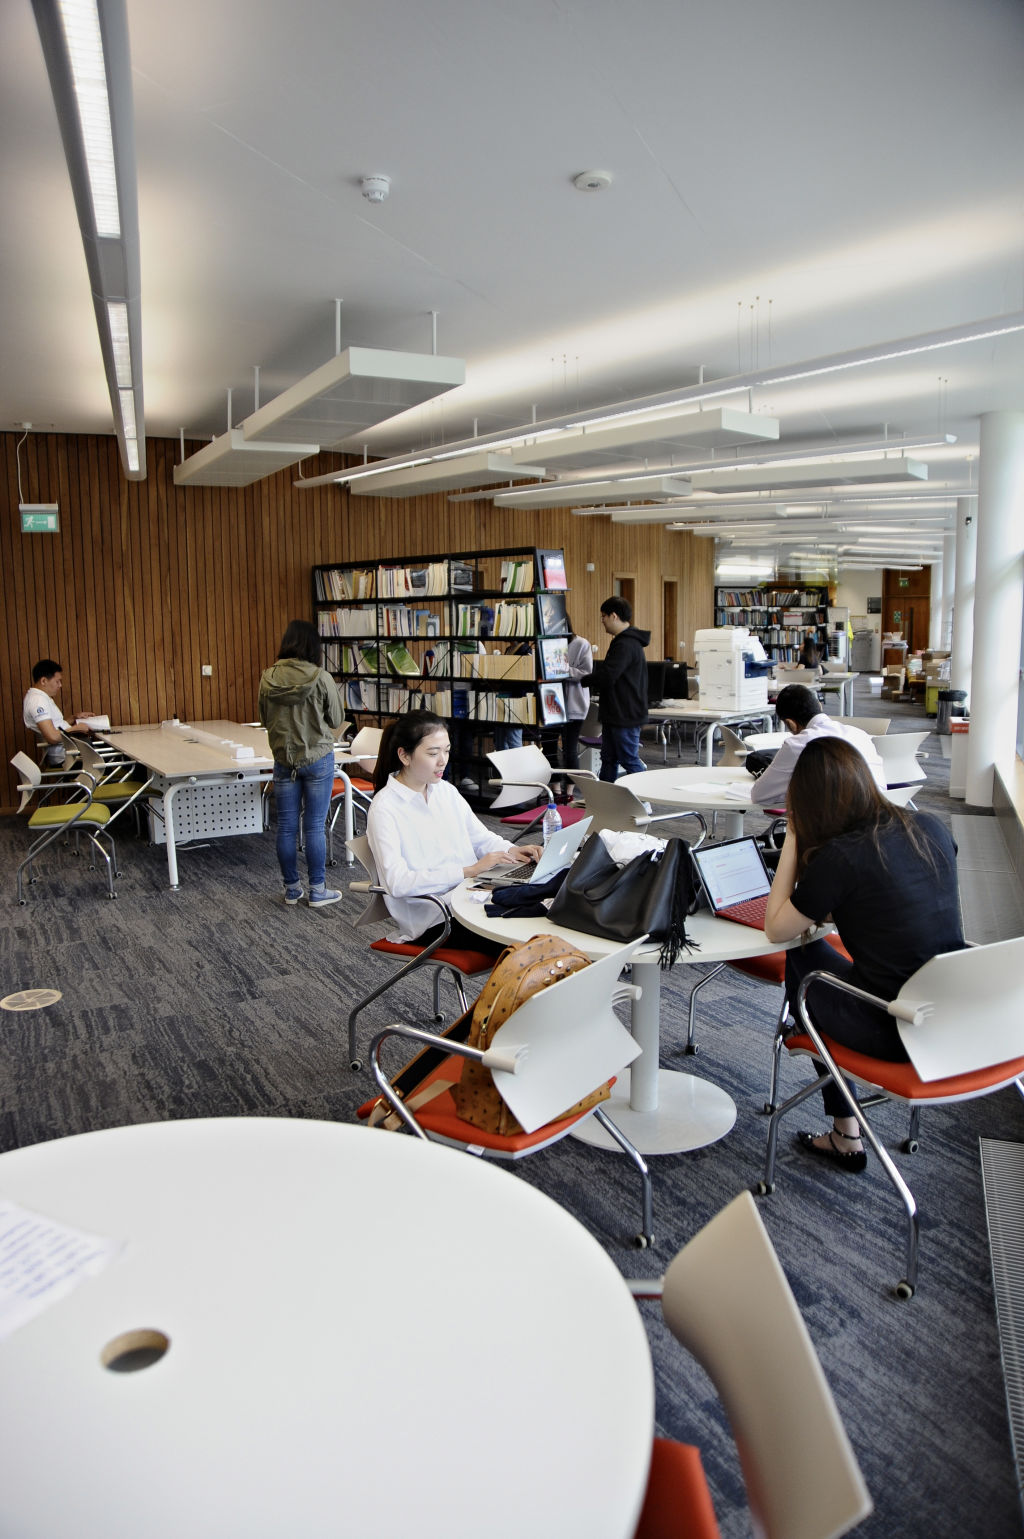 Students studying in the Learning Resource Centre